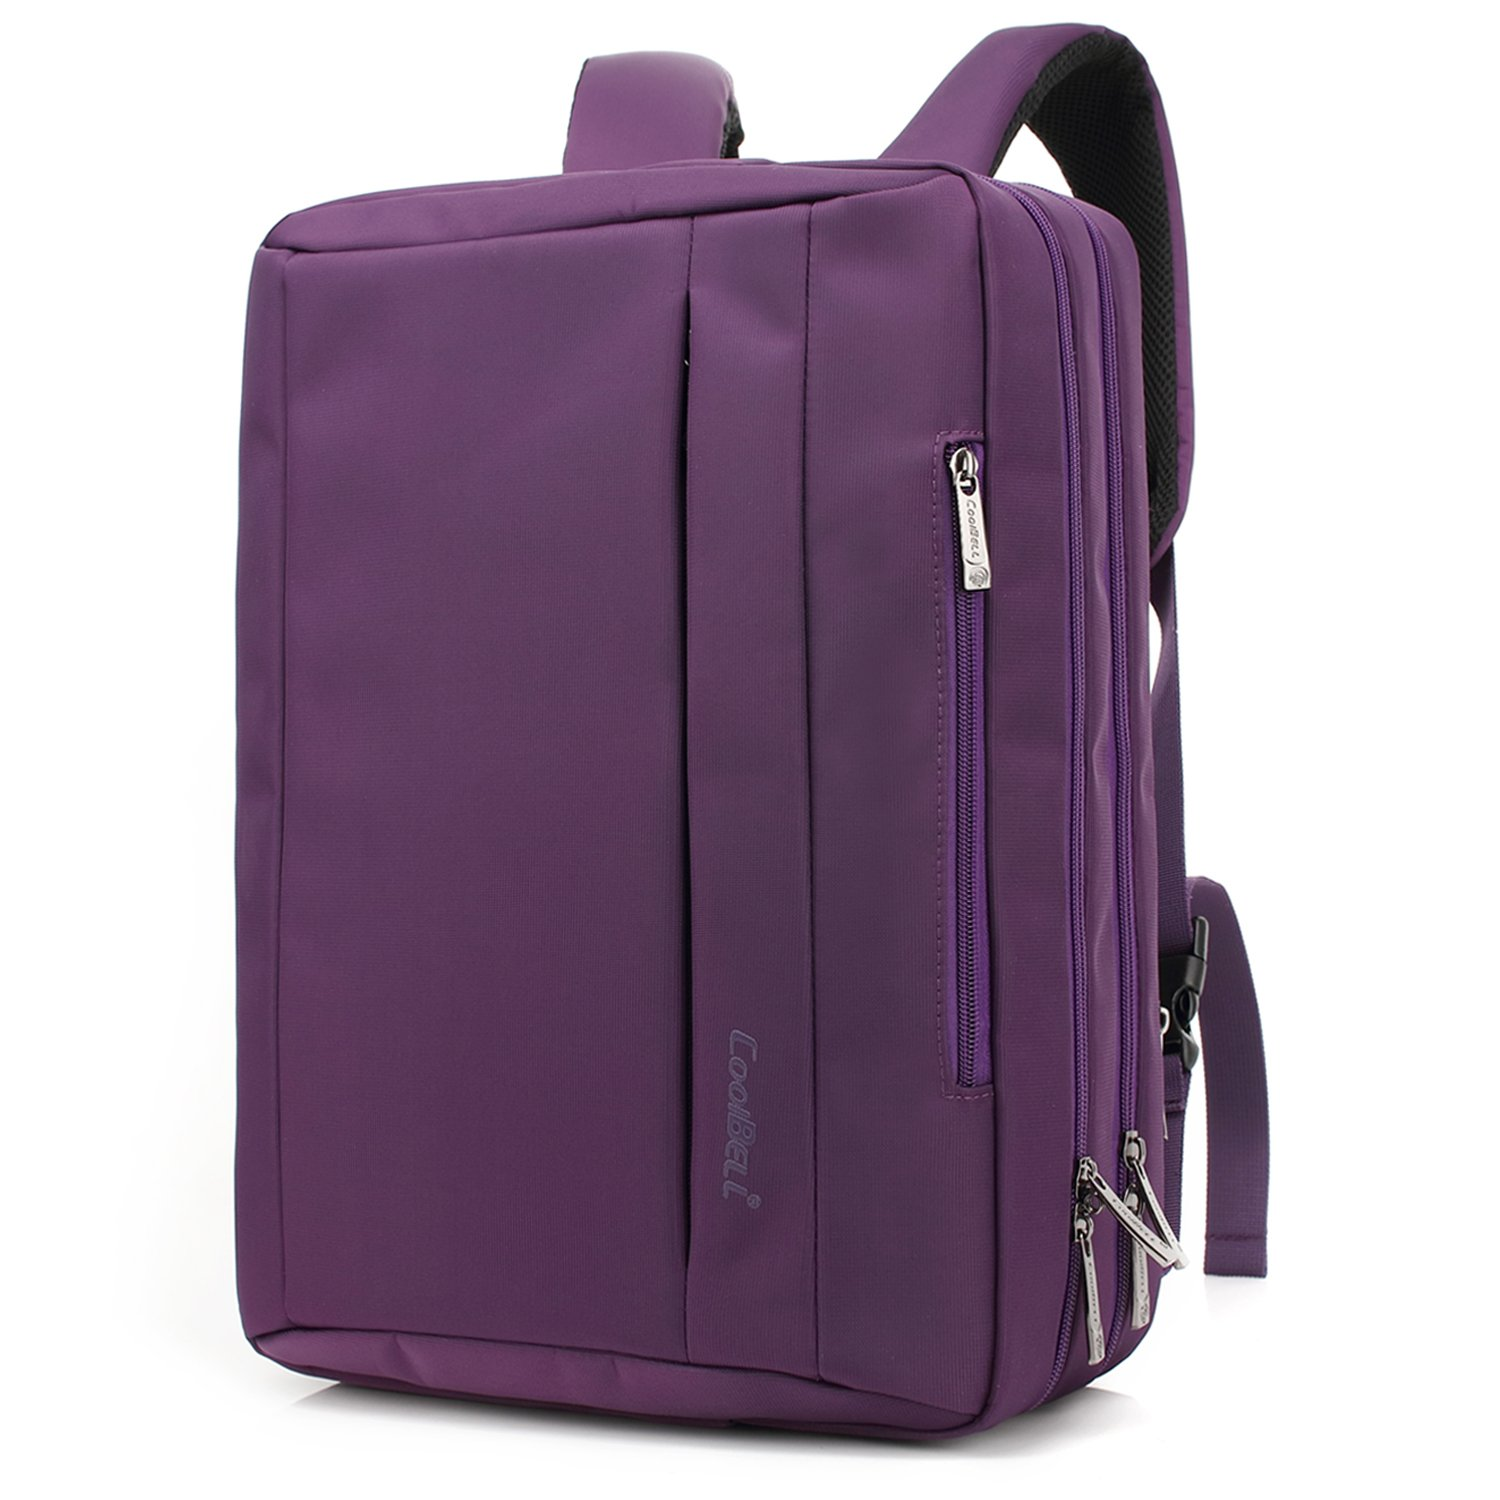 CoolBELL 17.3 inches Convertible Laptop Messenger Bag Oxford Cloth Shoulder Bag Backpack Multi-Functional Briefcase for Laptop/MacBook / Tablet Women (Purple)